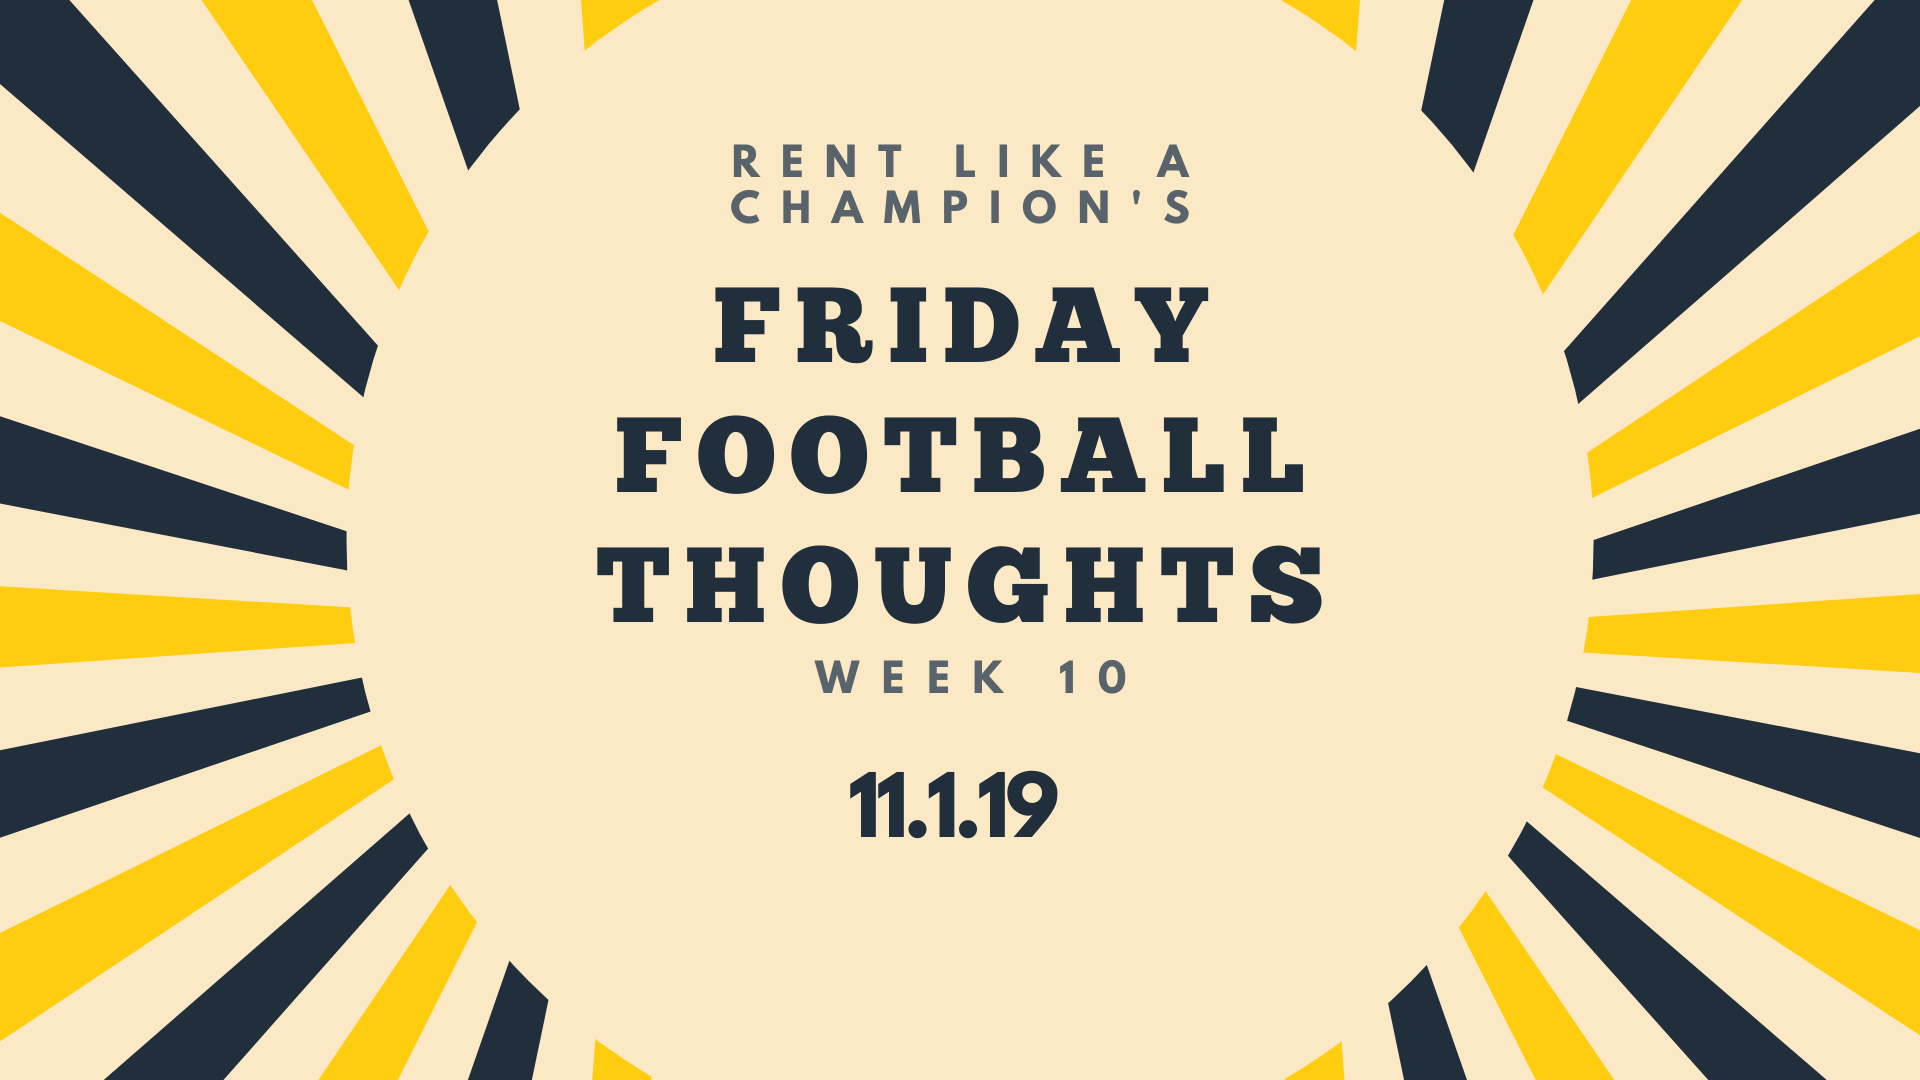 Friday Football Thoughts Template (2)